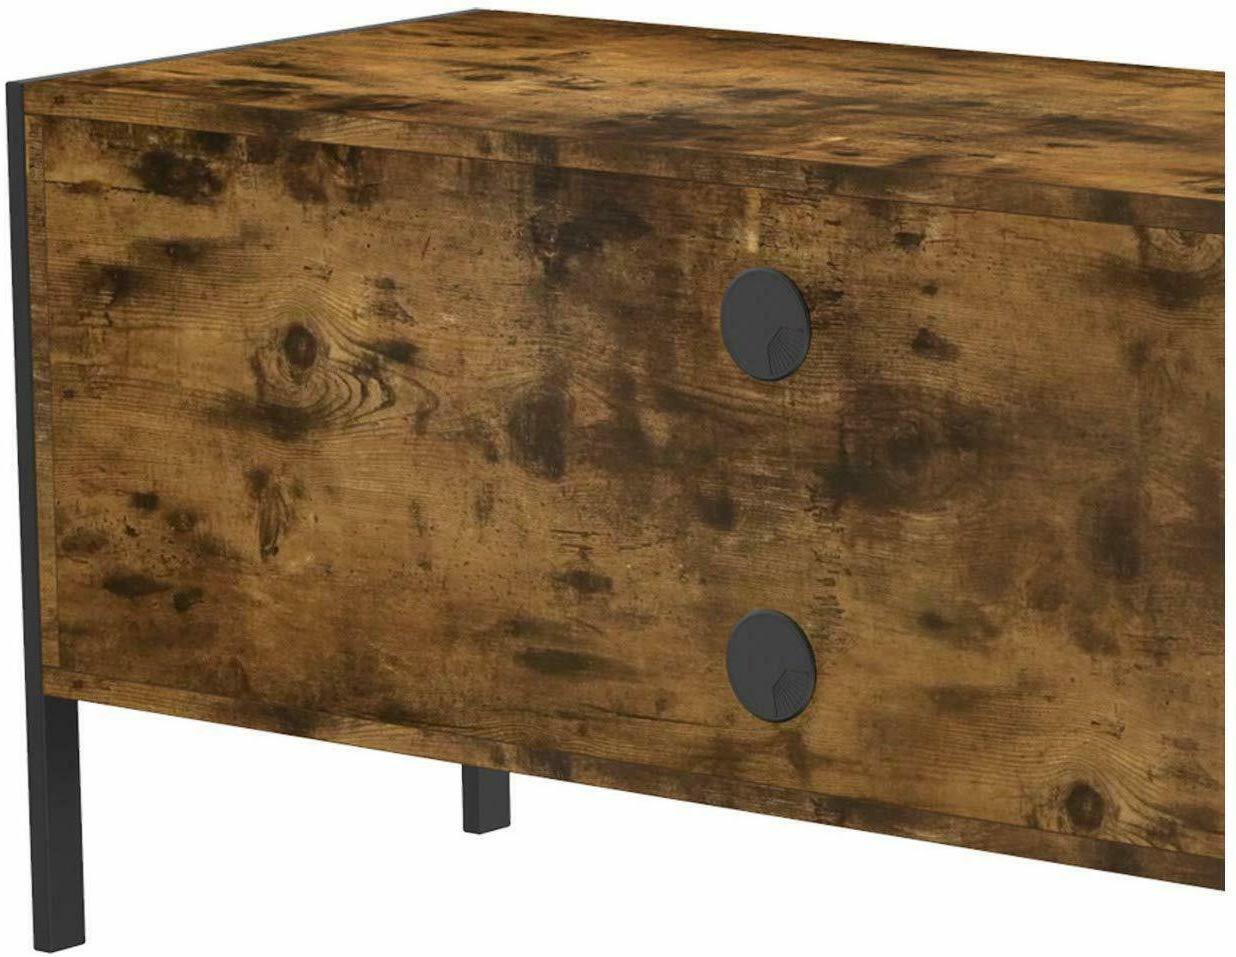 IRONCK Industrial TV Console, Television Console Table